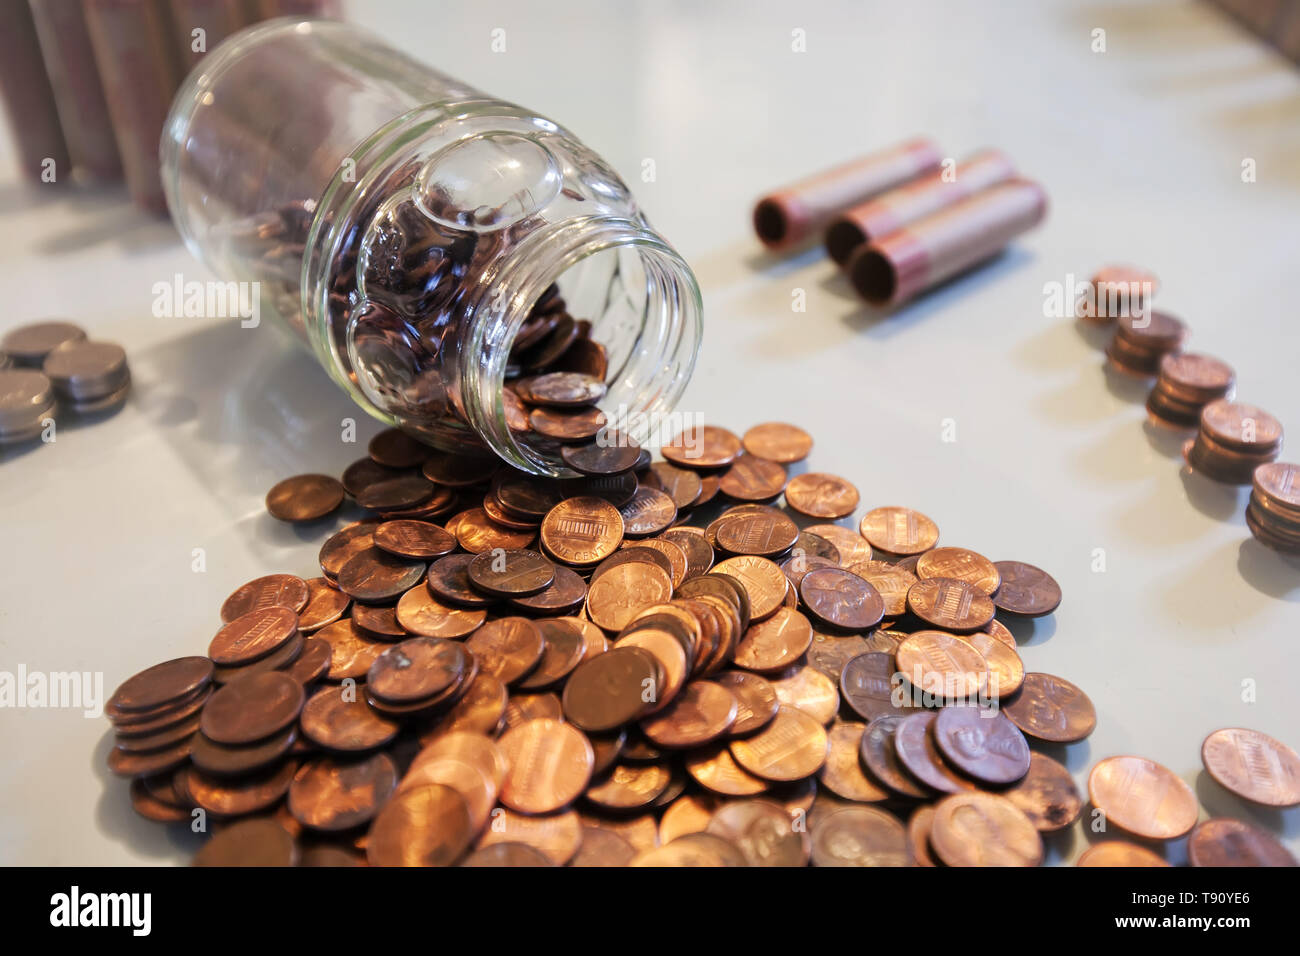 A spilled glass jar of pennies and coins from piggy bank or spare change savings. - Stock Image